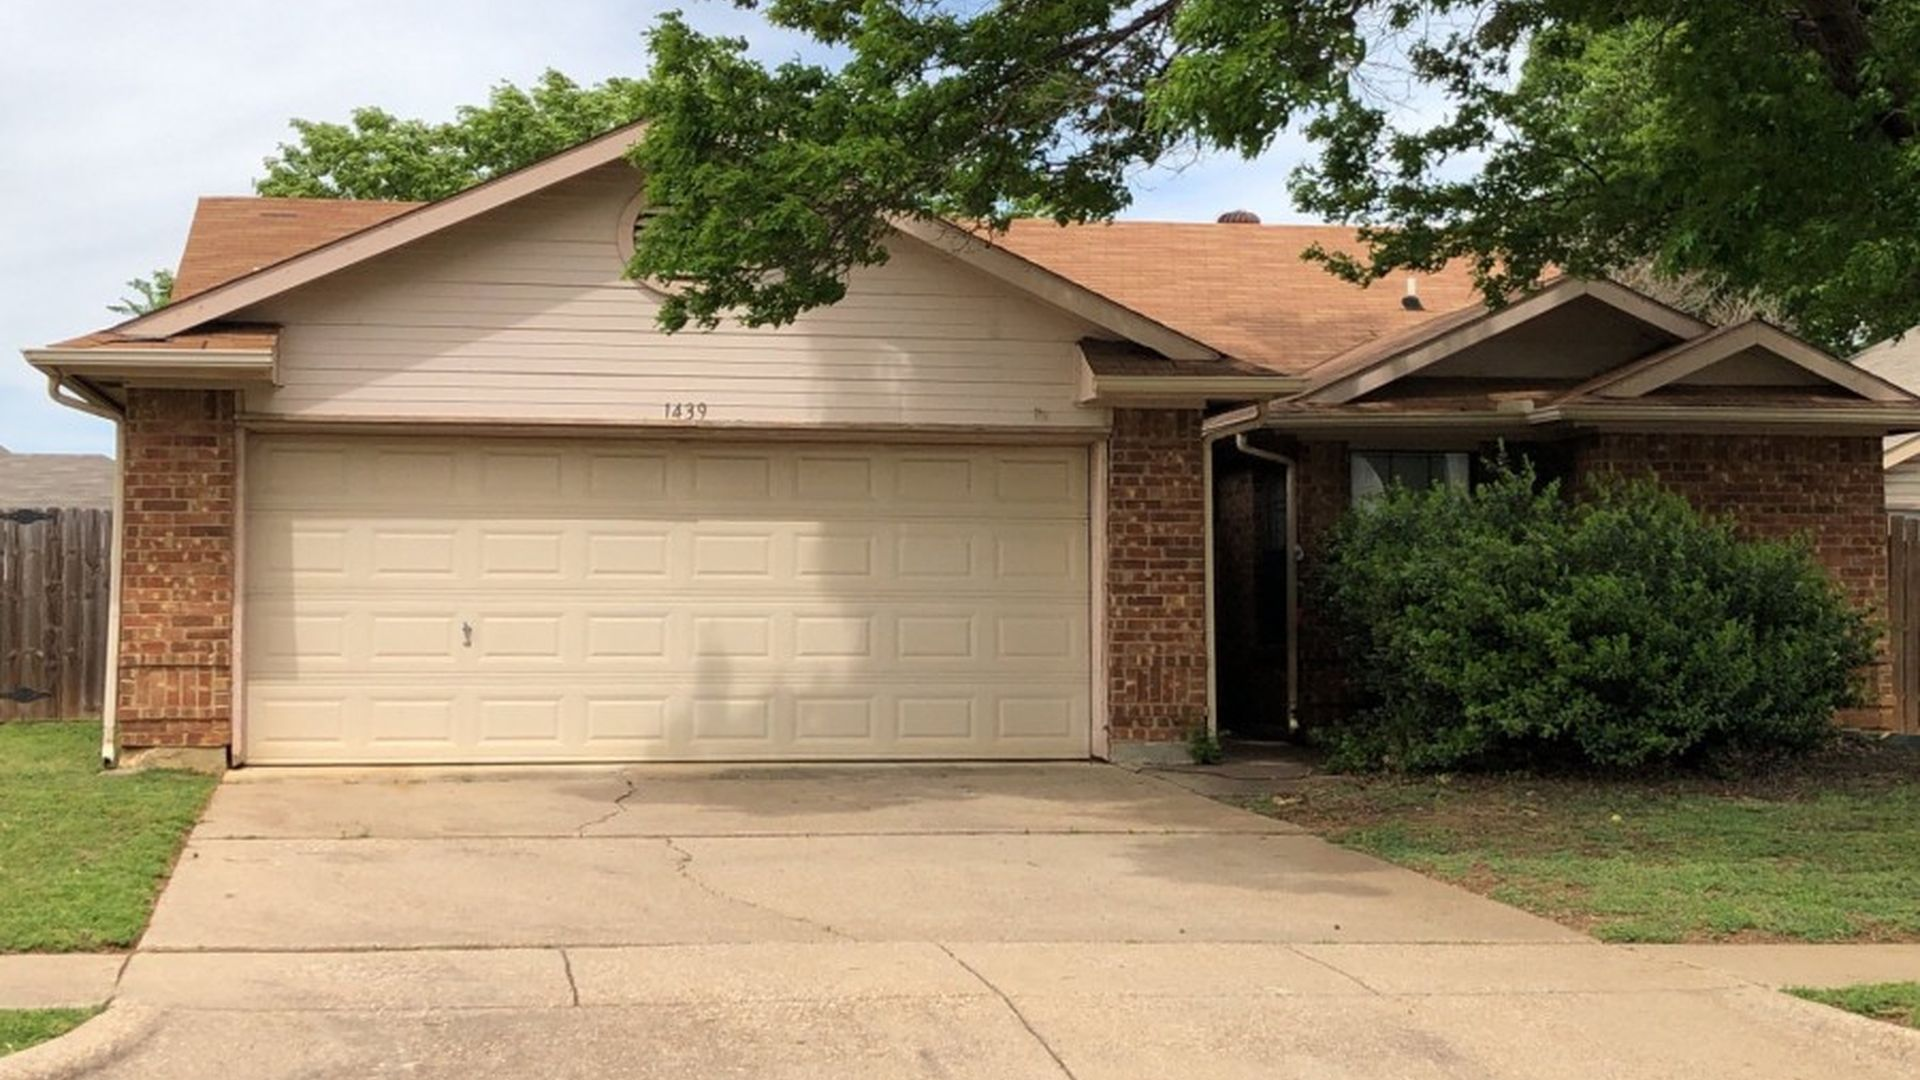 Garage Apartments For Rent Grapevine Tx Grapevine Real Estate Grapevine Tx Homes For Sale Zillow